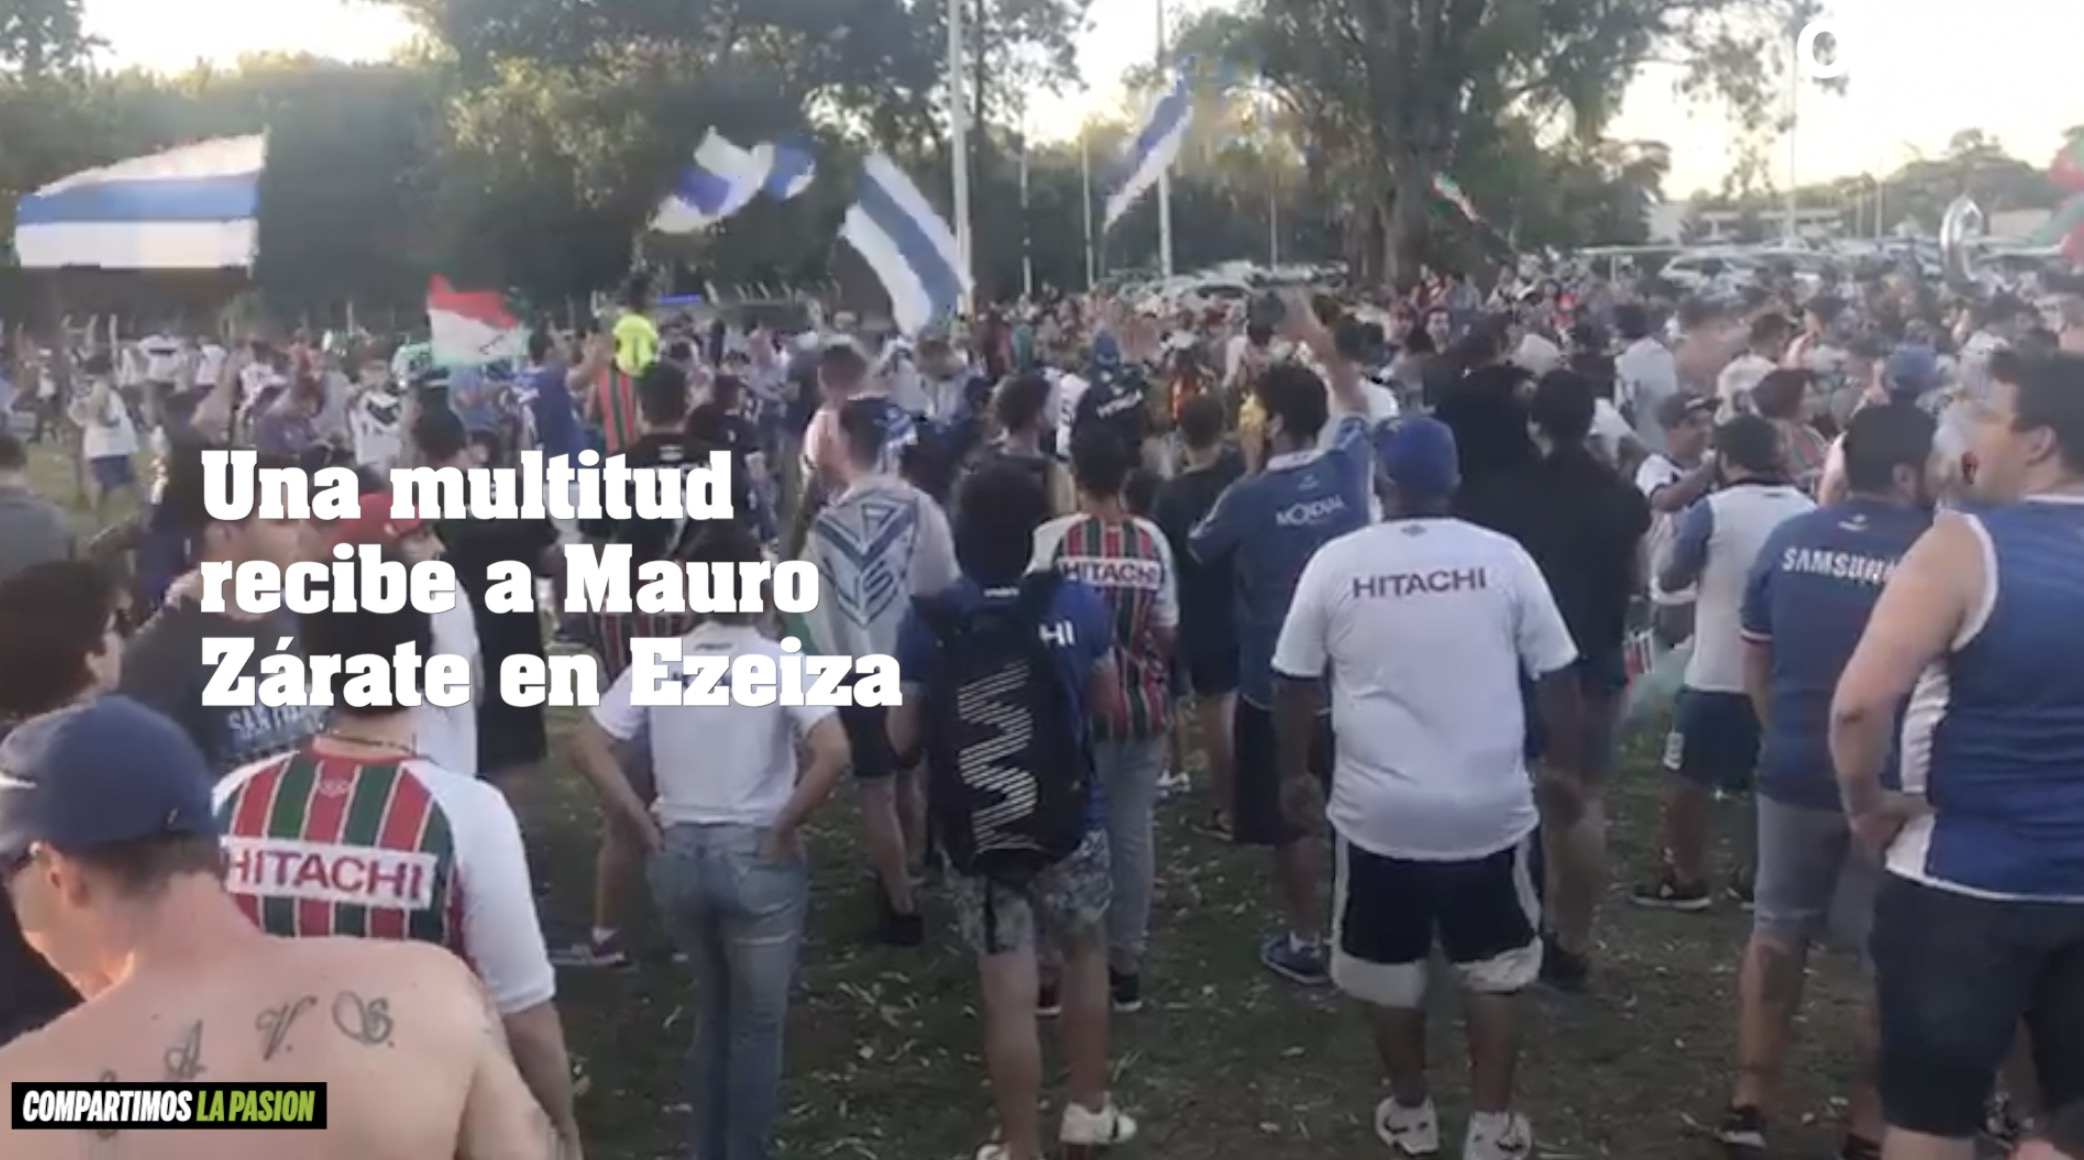 Una multitud recibe a Mauro Zárate